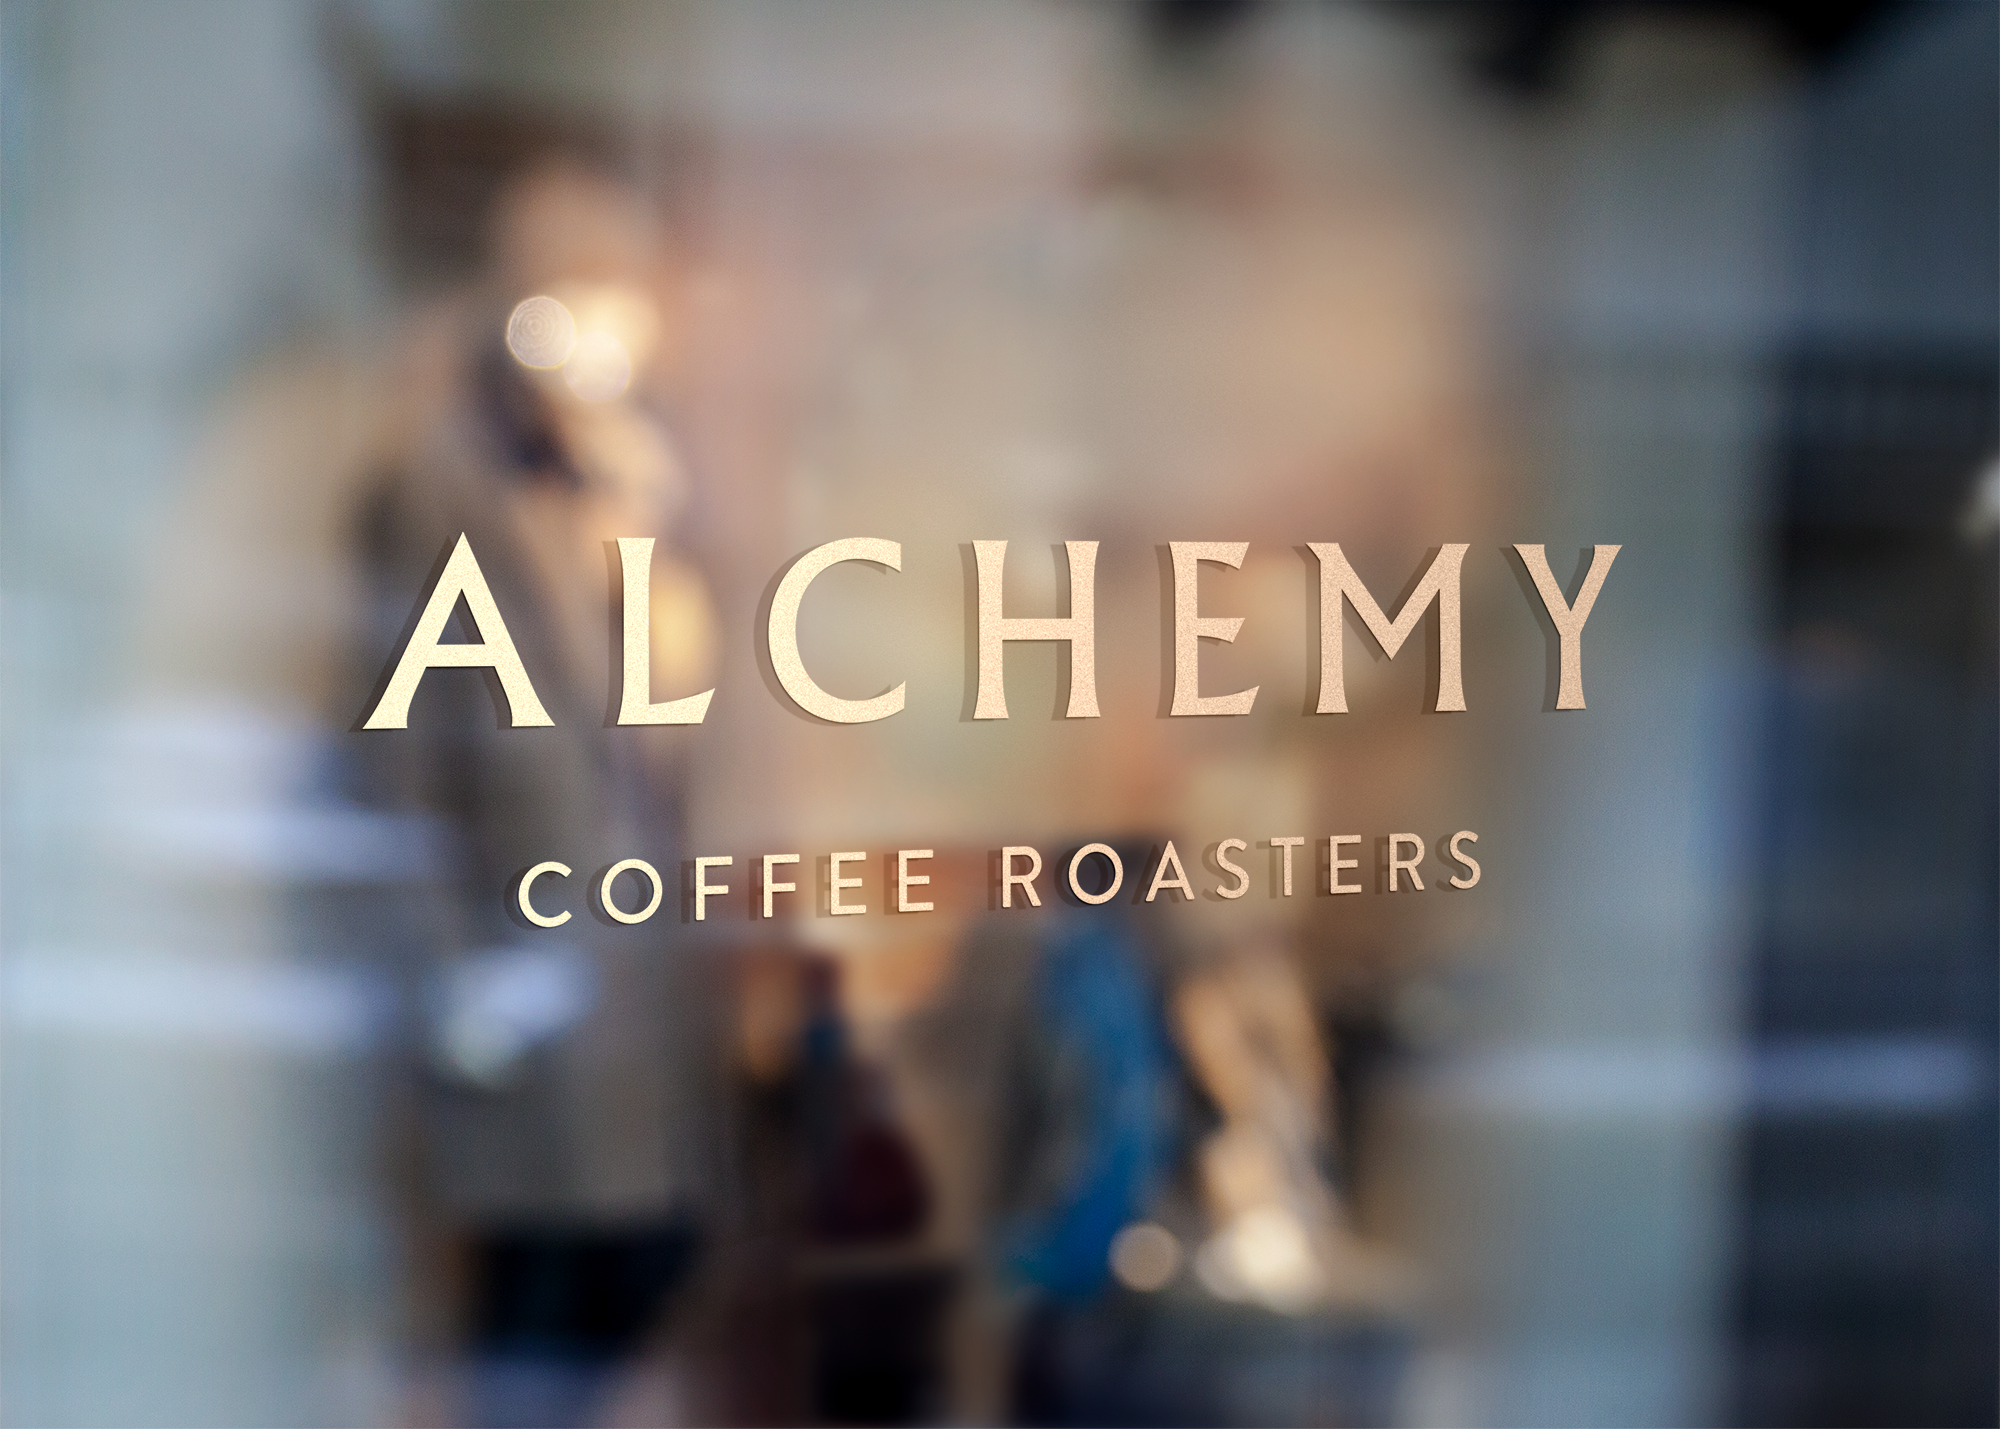 alchemy-window-signage-mockup.png